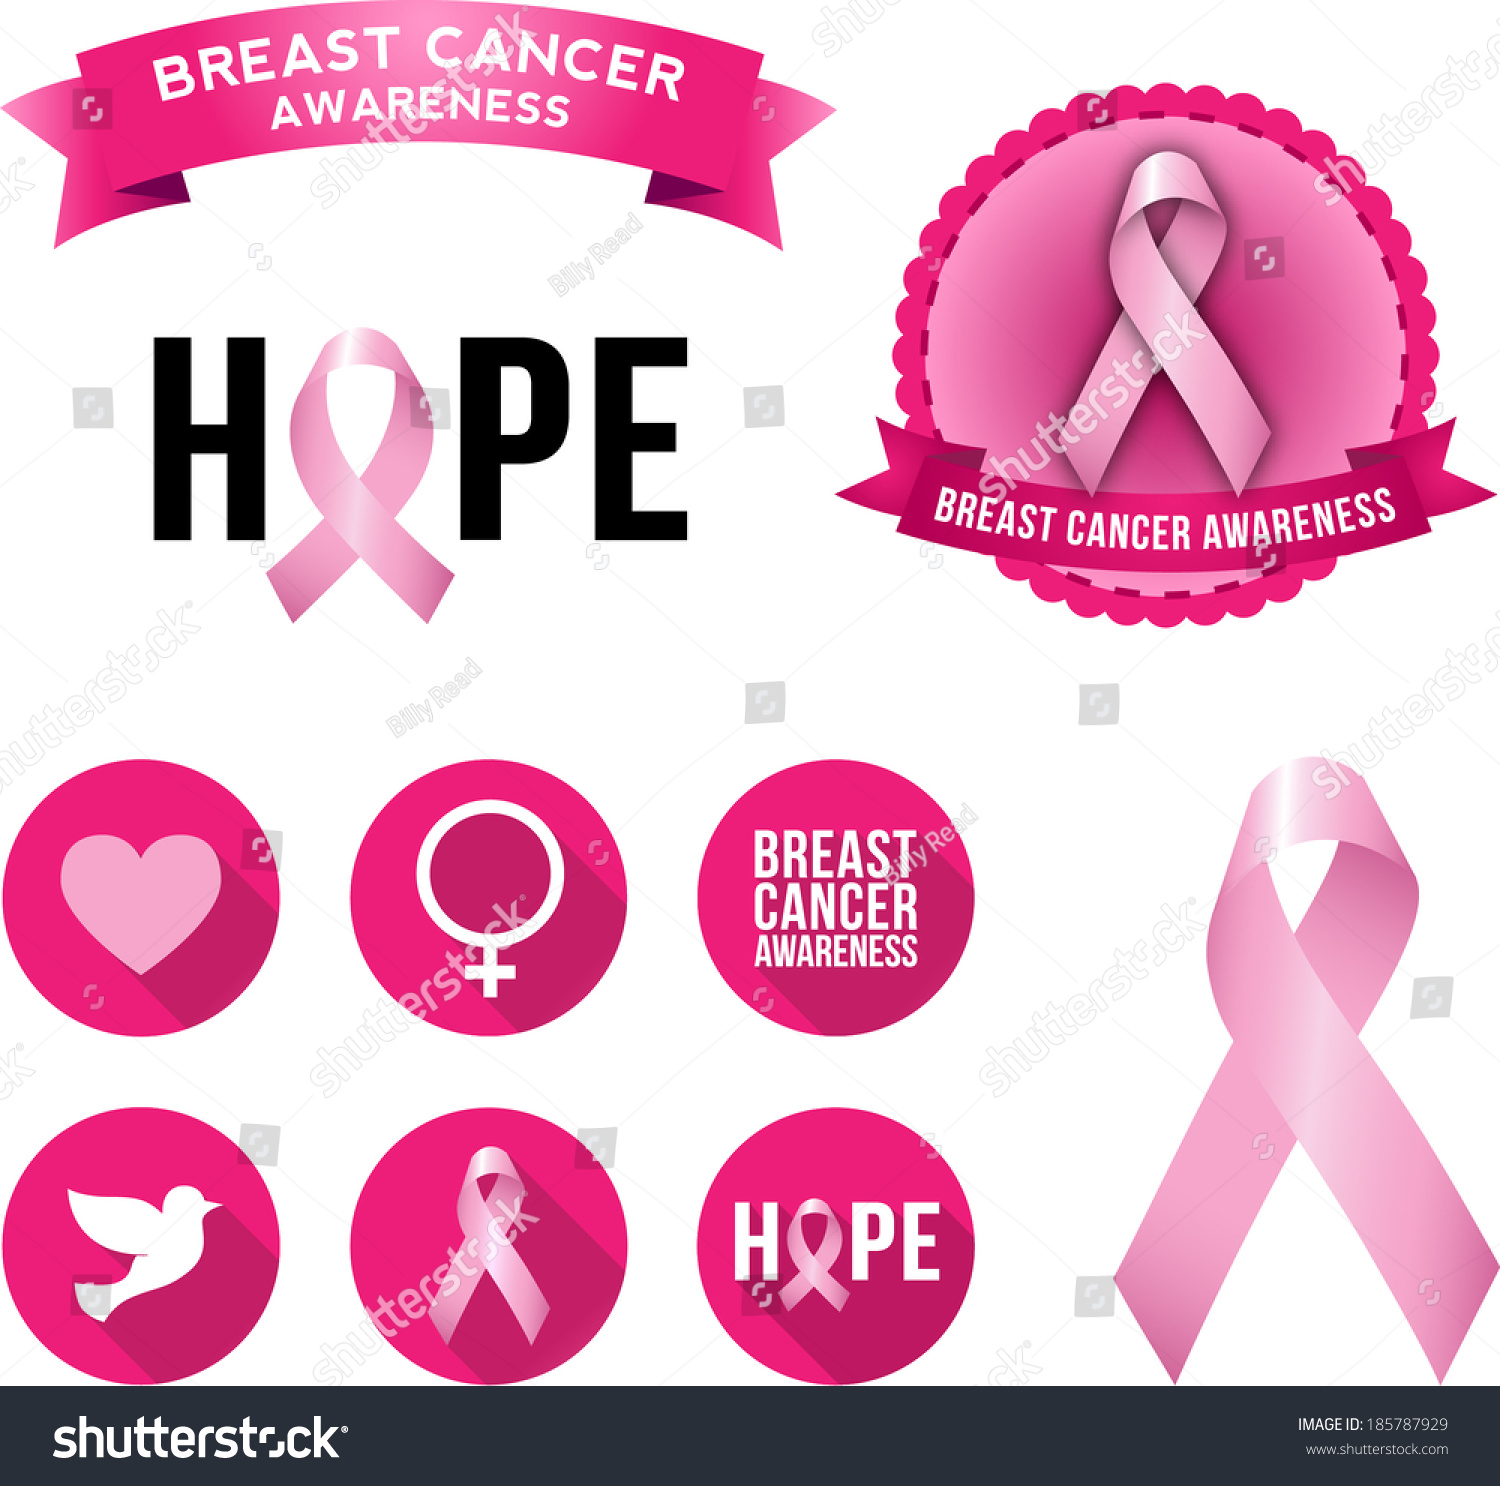 Breast cancer awareness icons Icons Creative Market